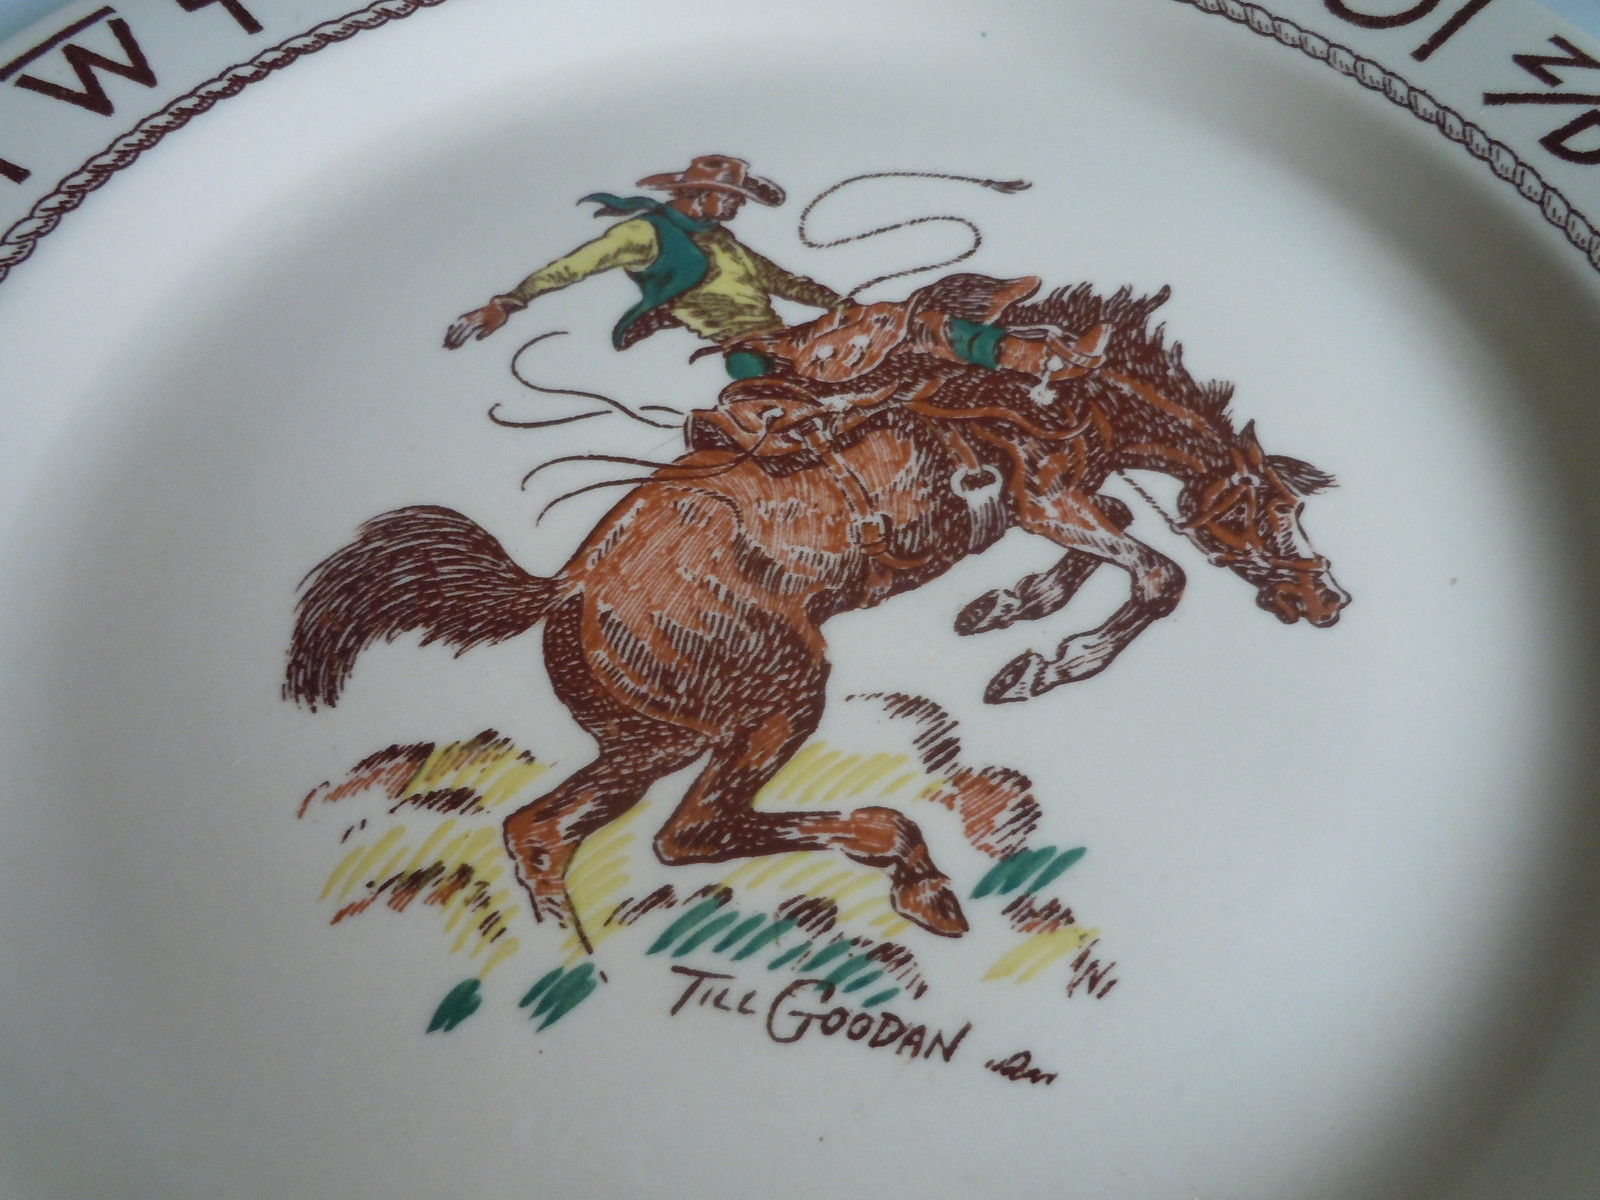 Wallace Rodeo Dinner plate ware image 2